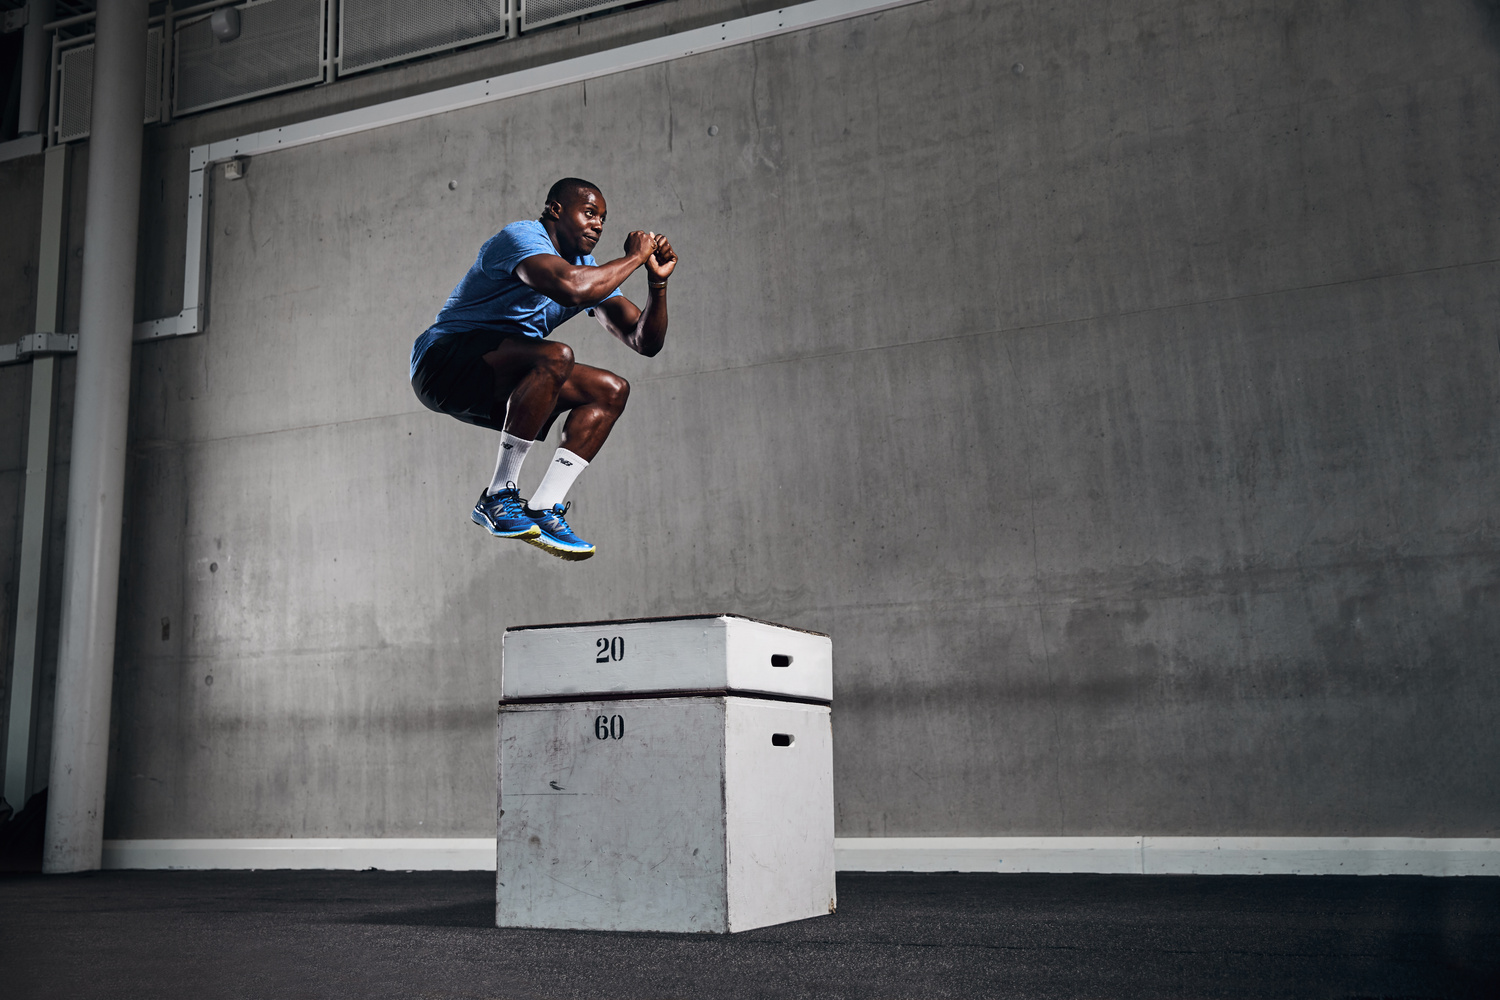 Box jump by Rob Passmore